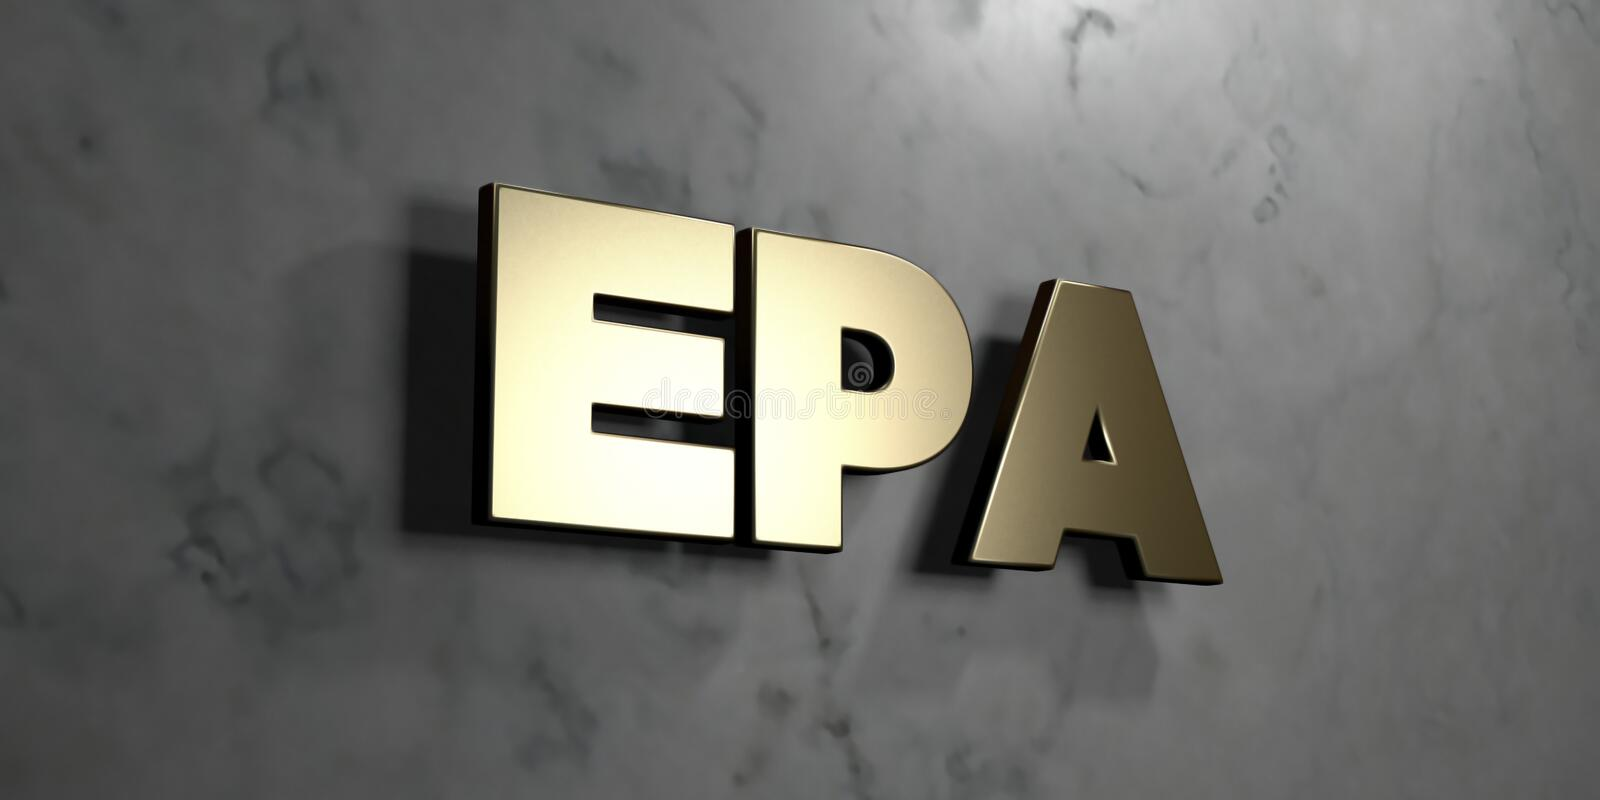 Epa - Gold sign mounted on glossy marble wall - 3D rendered royalty free stock illustration vector illustration